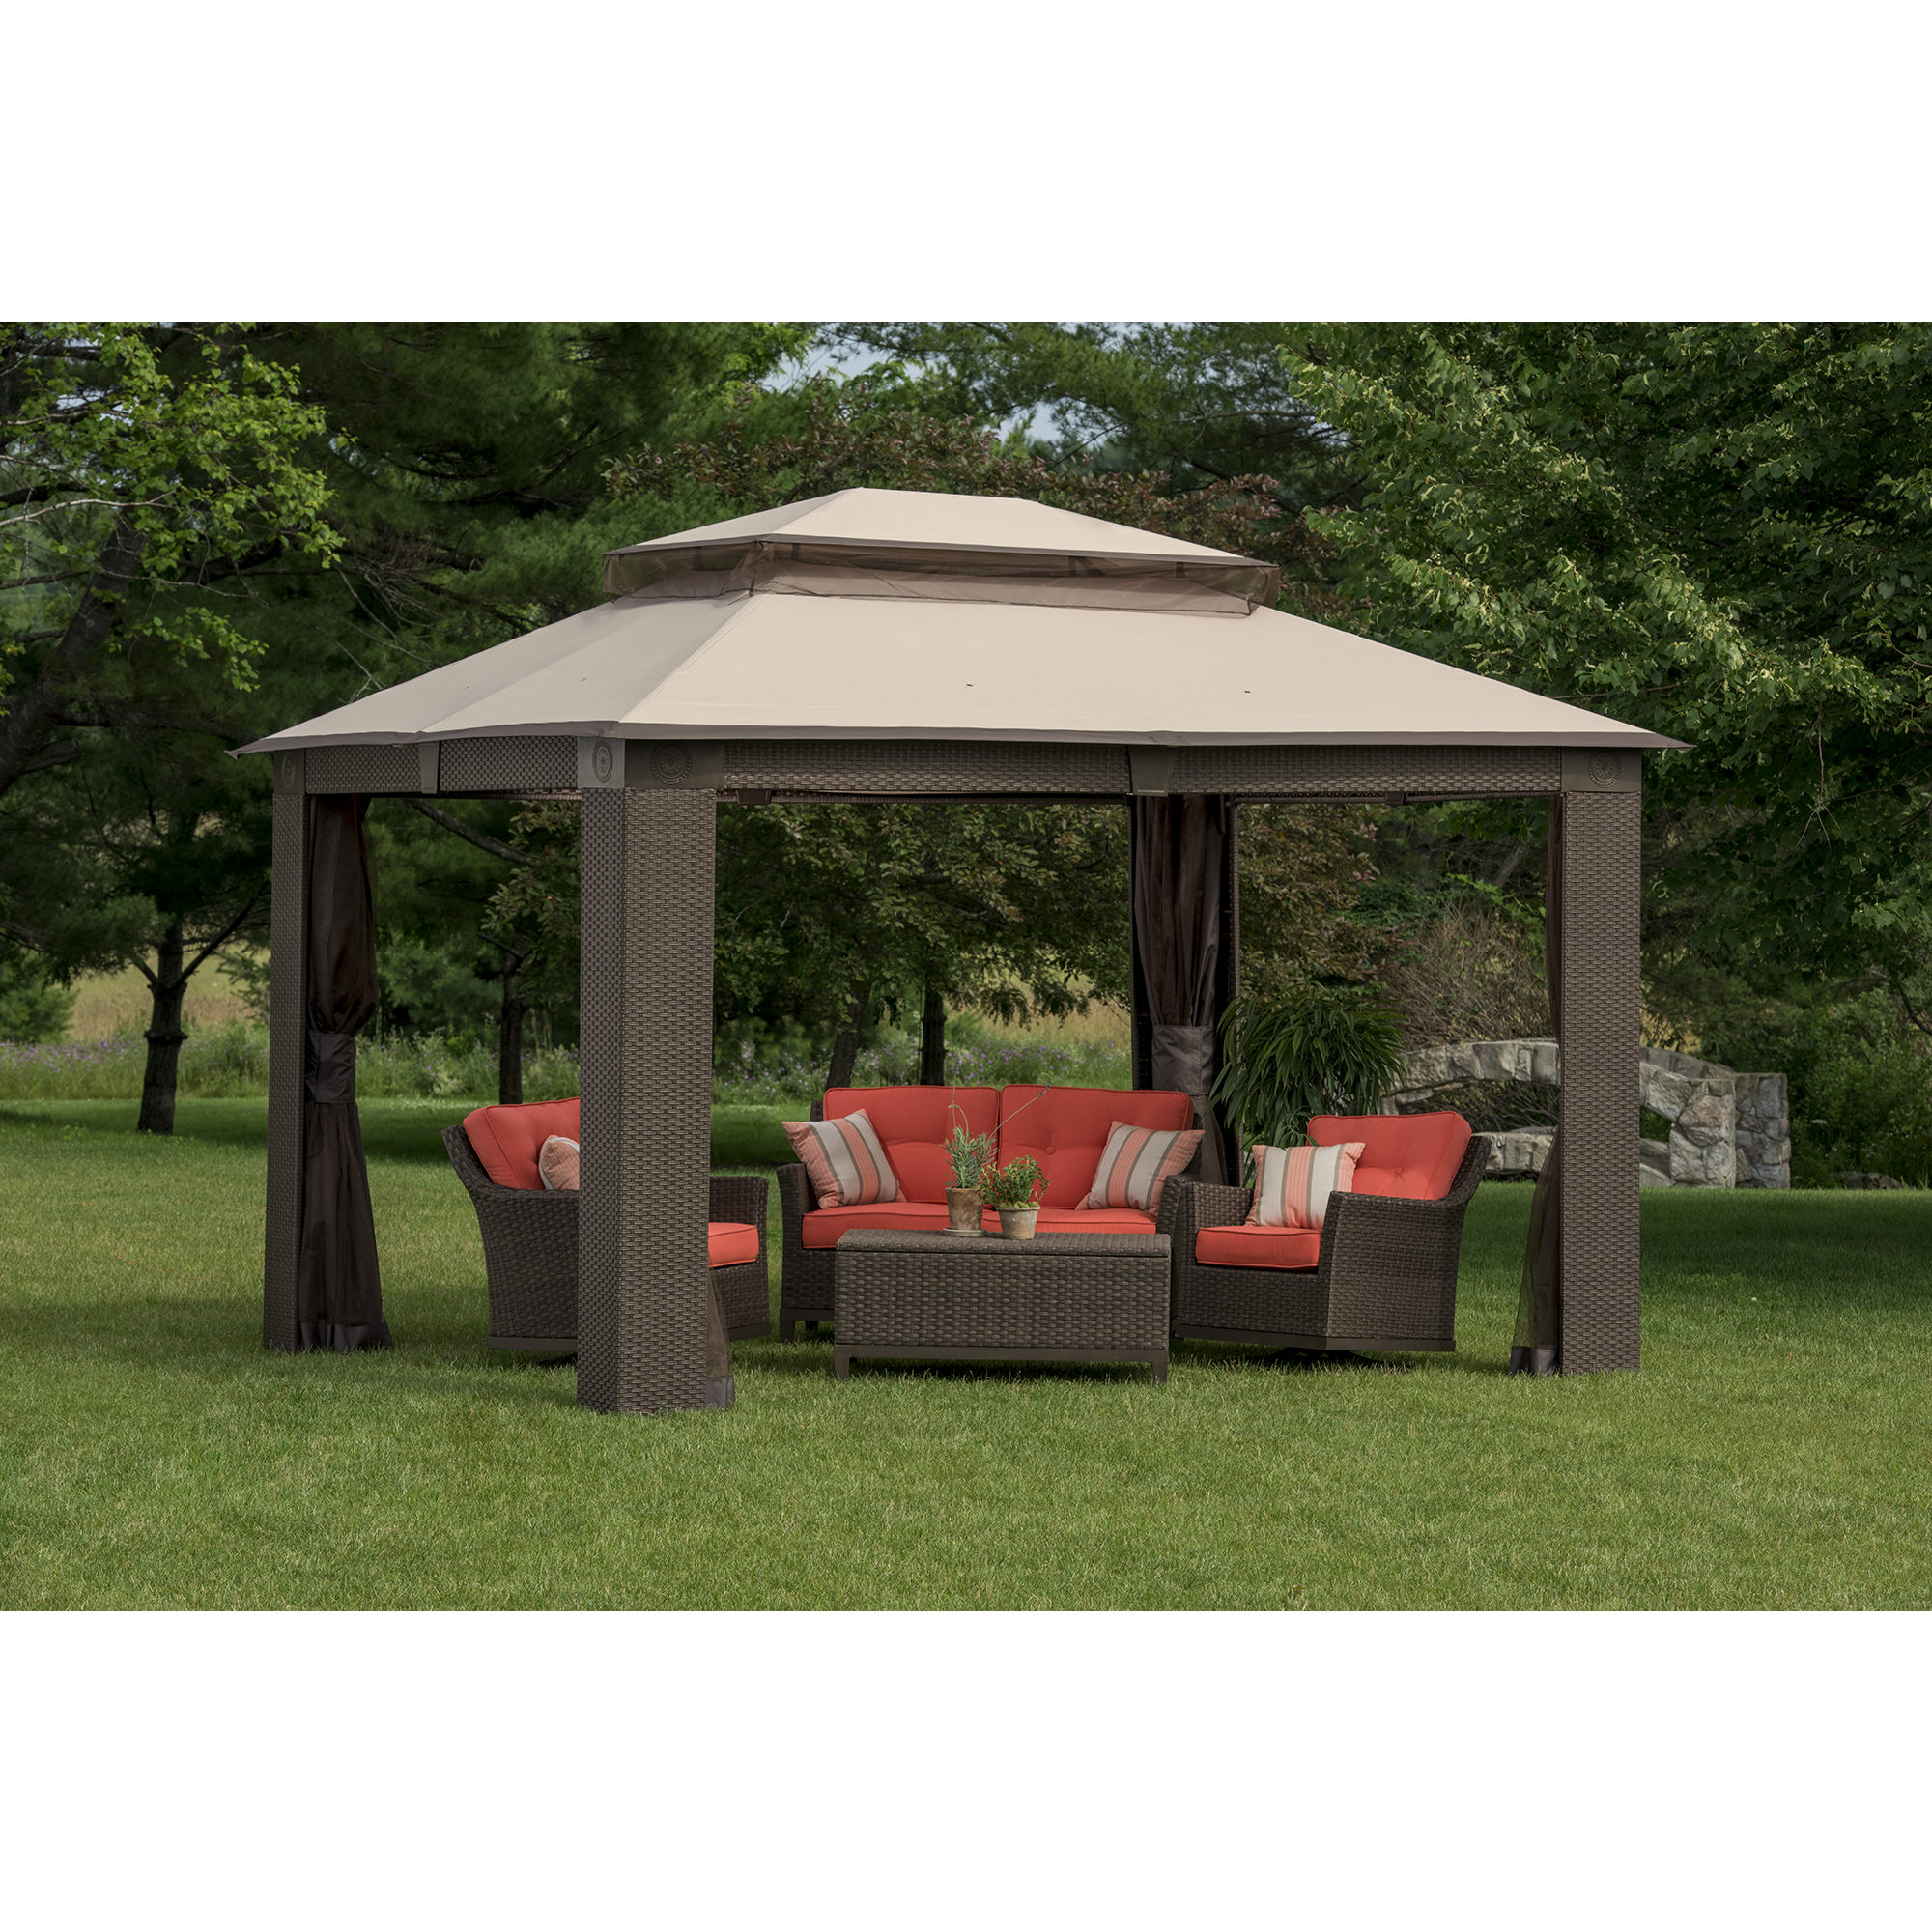 Elegant sunjoy gazebo for garden ideas with sunjoy hardtop gazebo and sunjoy grill gazebo